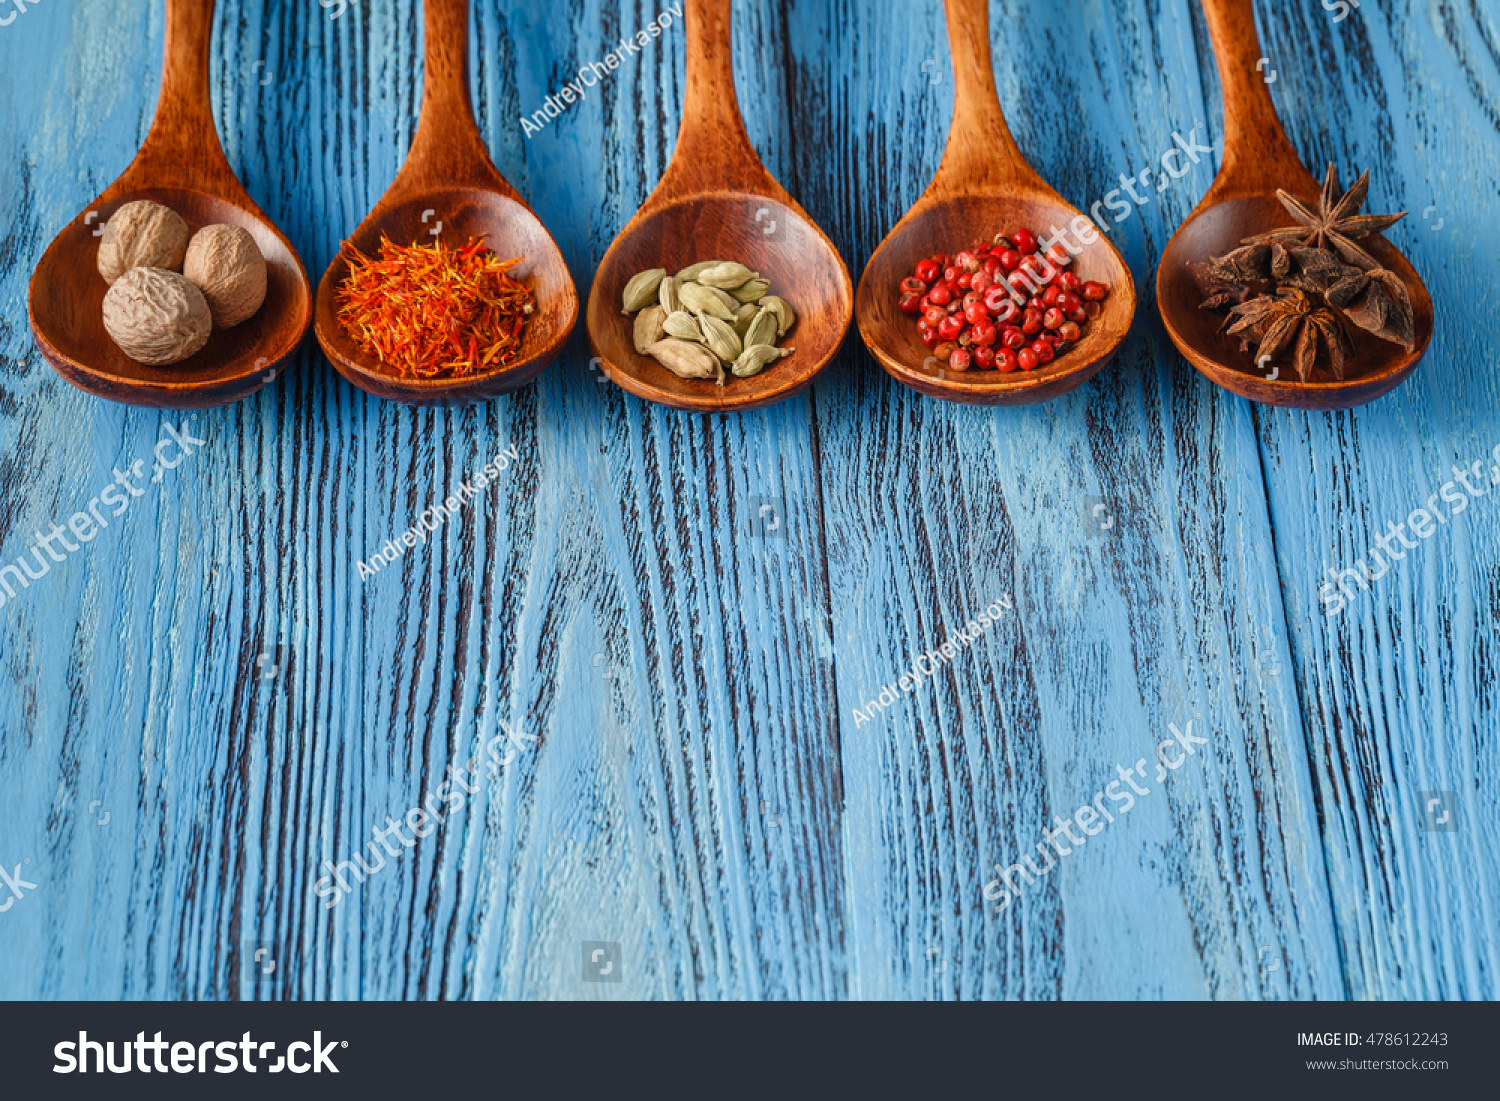 Collection Spices On Wooden Spoons Blue Stock Photo (Edit Now ...